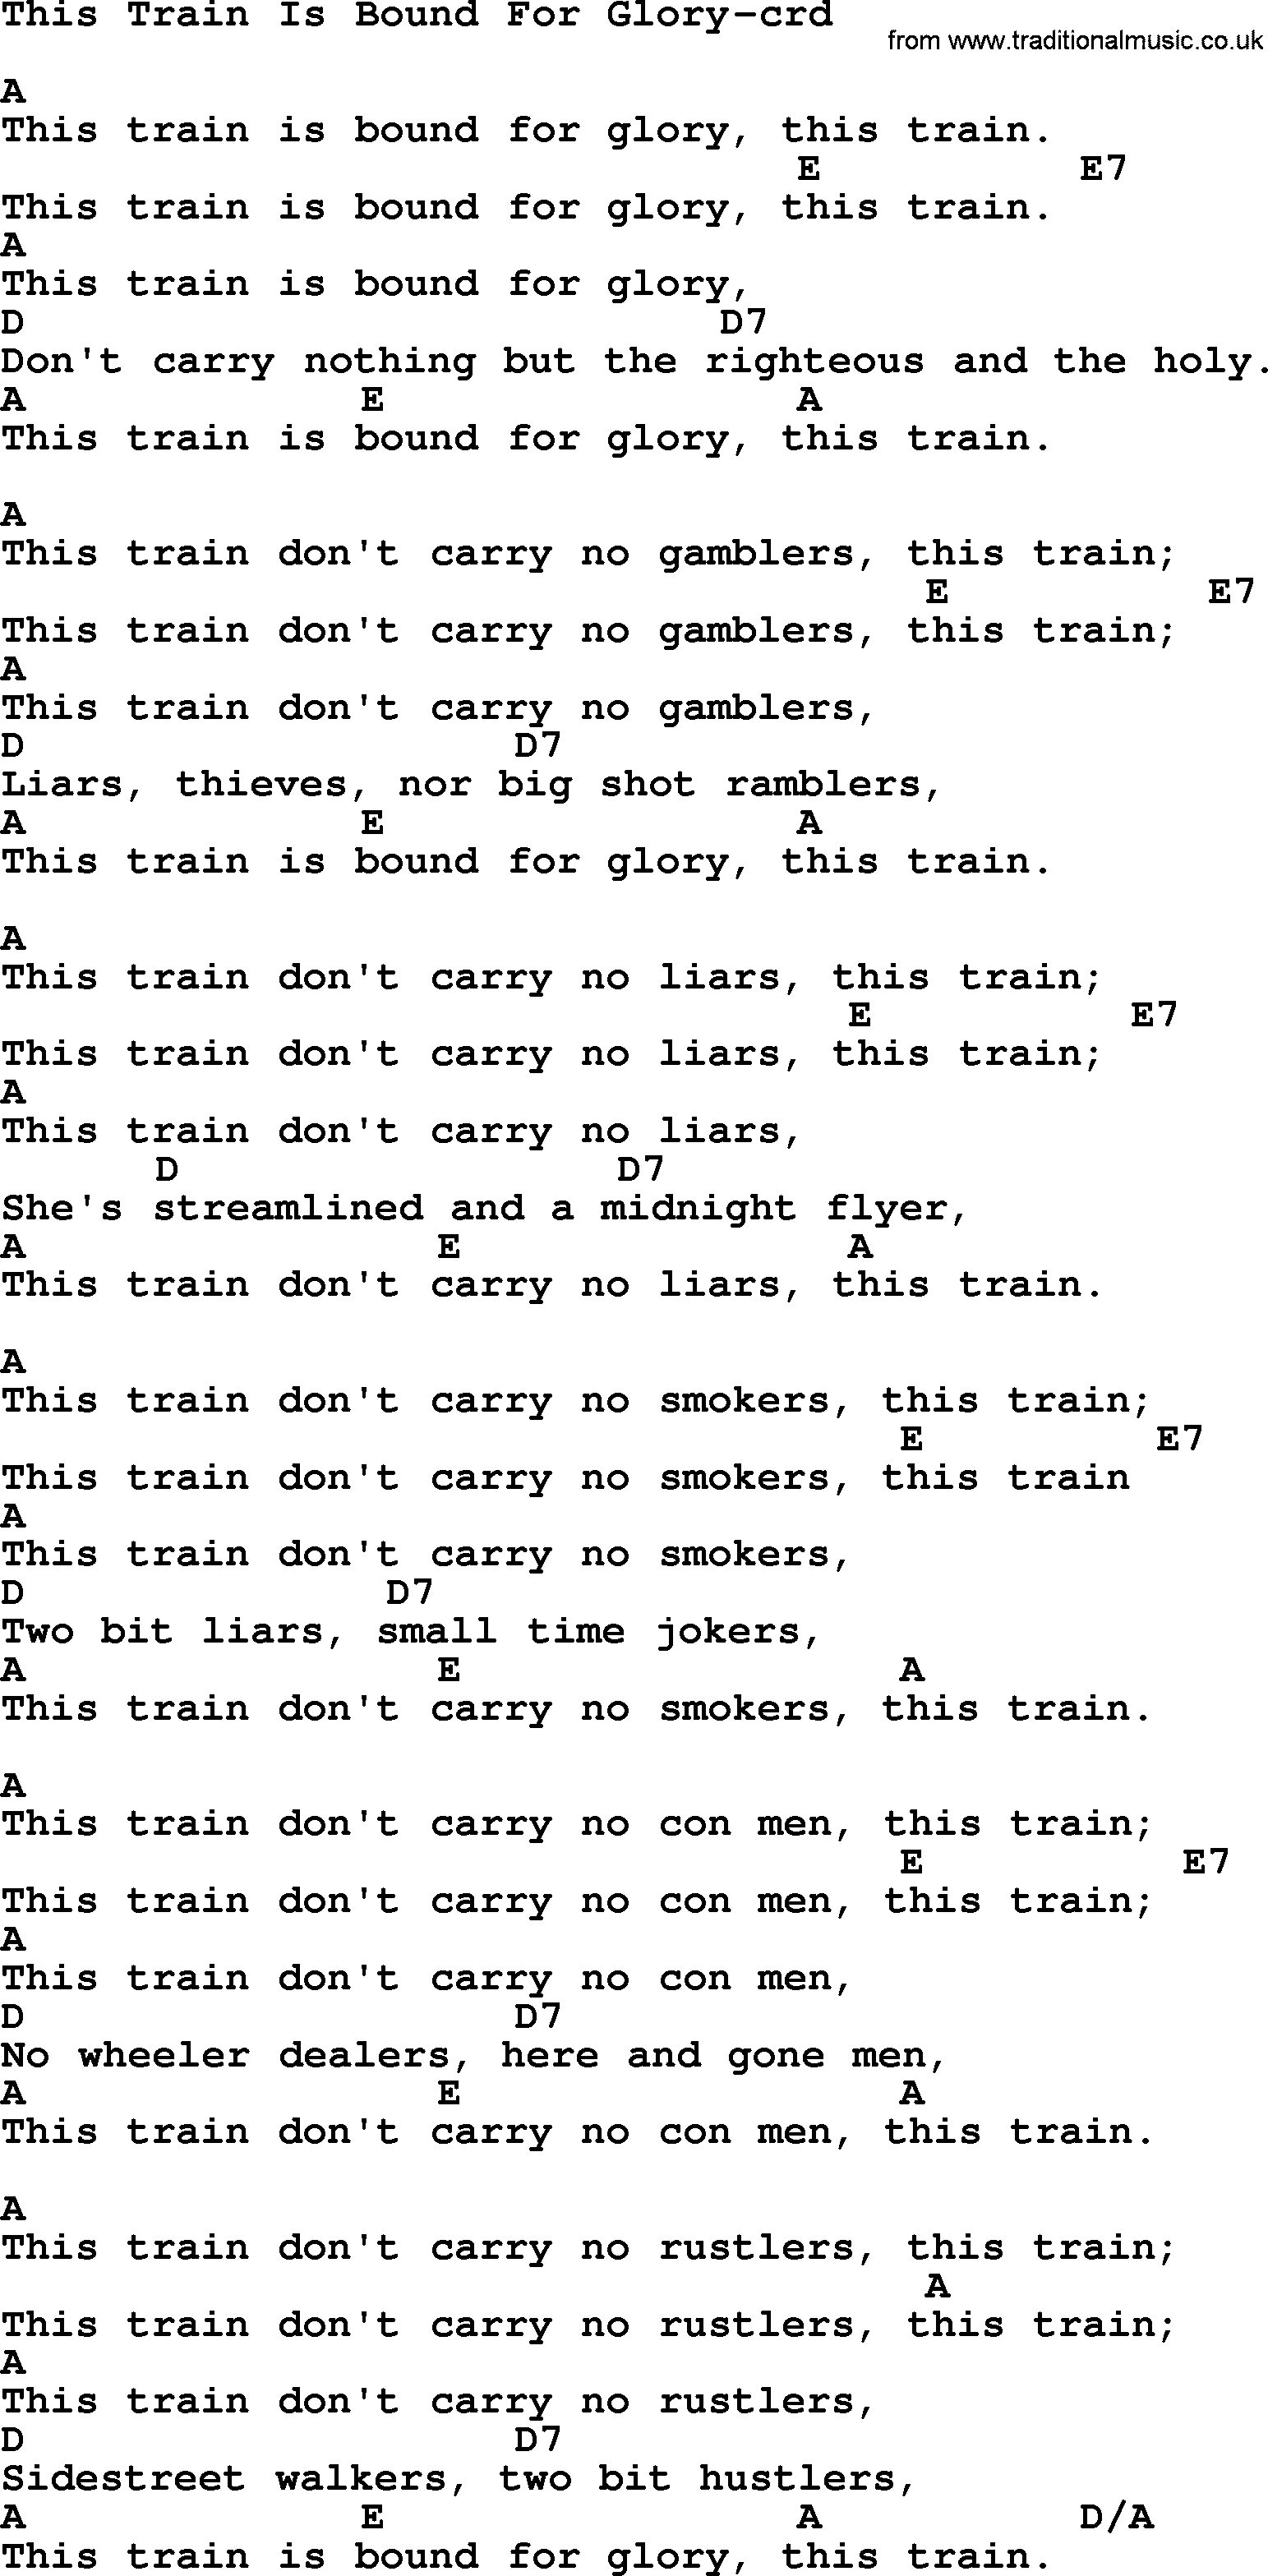 Woody Guthrie Song This Train Is Bound For Glory Lyrics And Chords